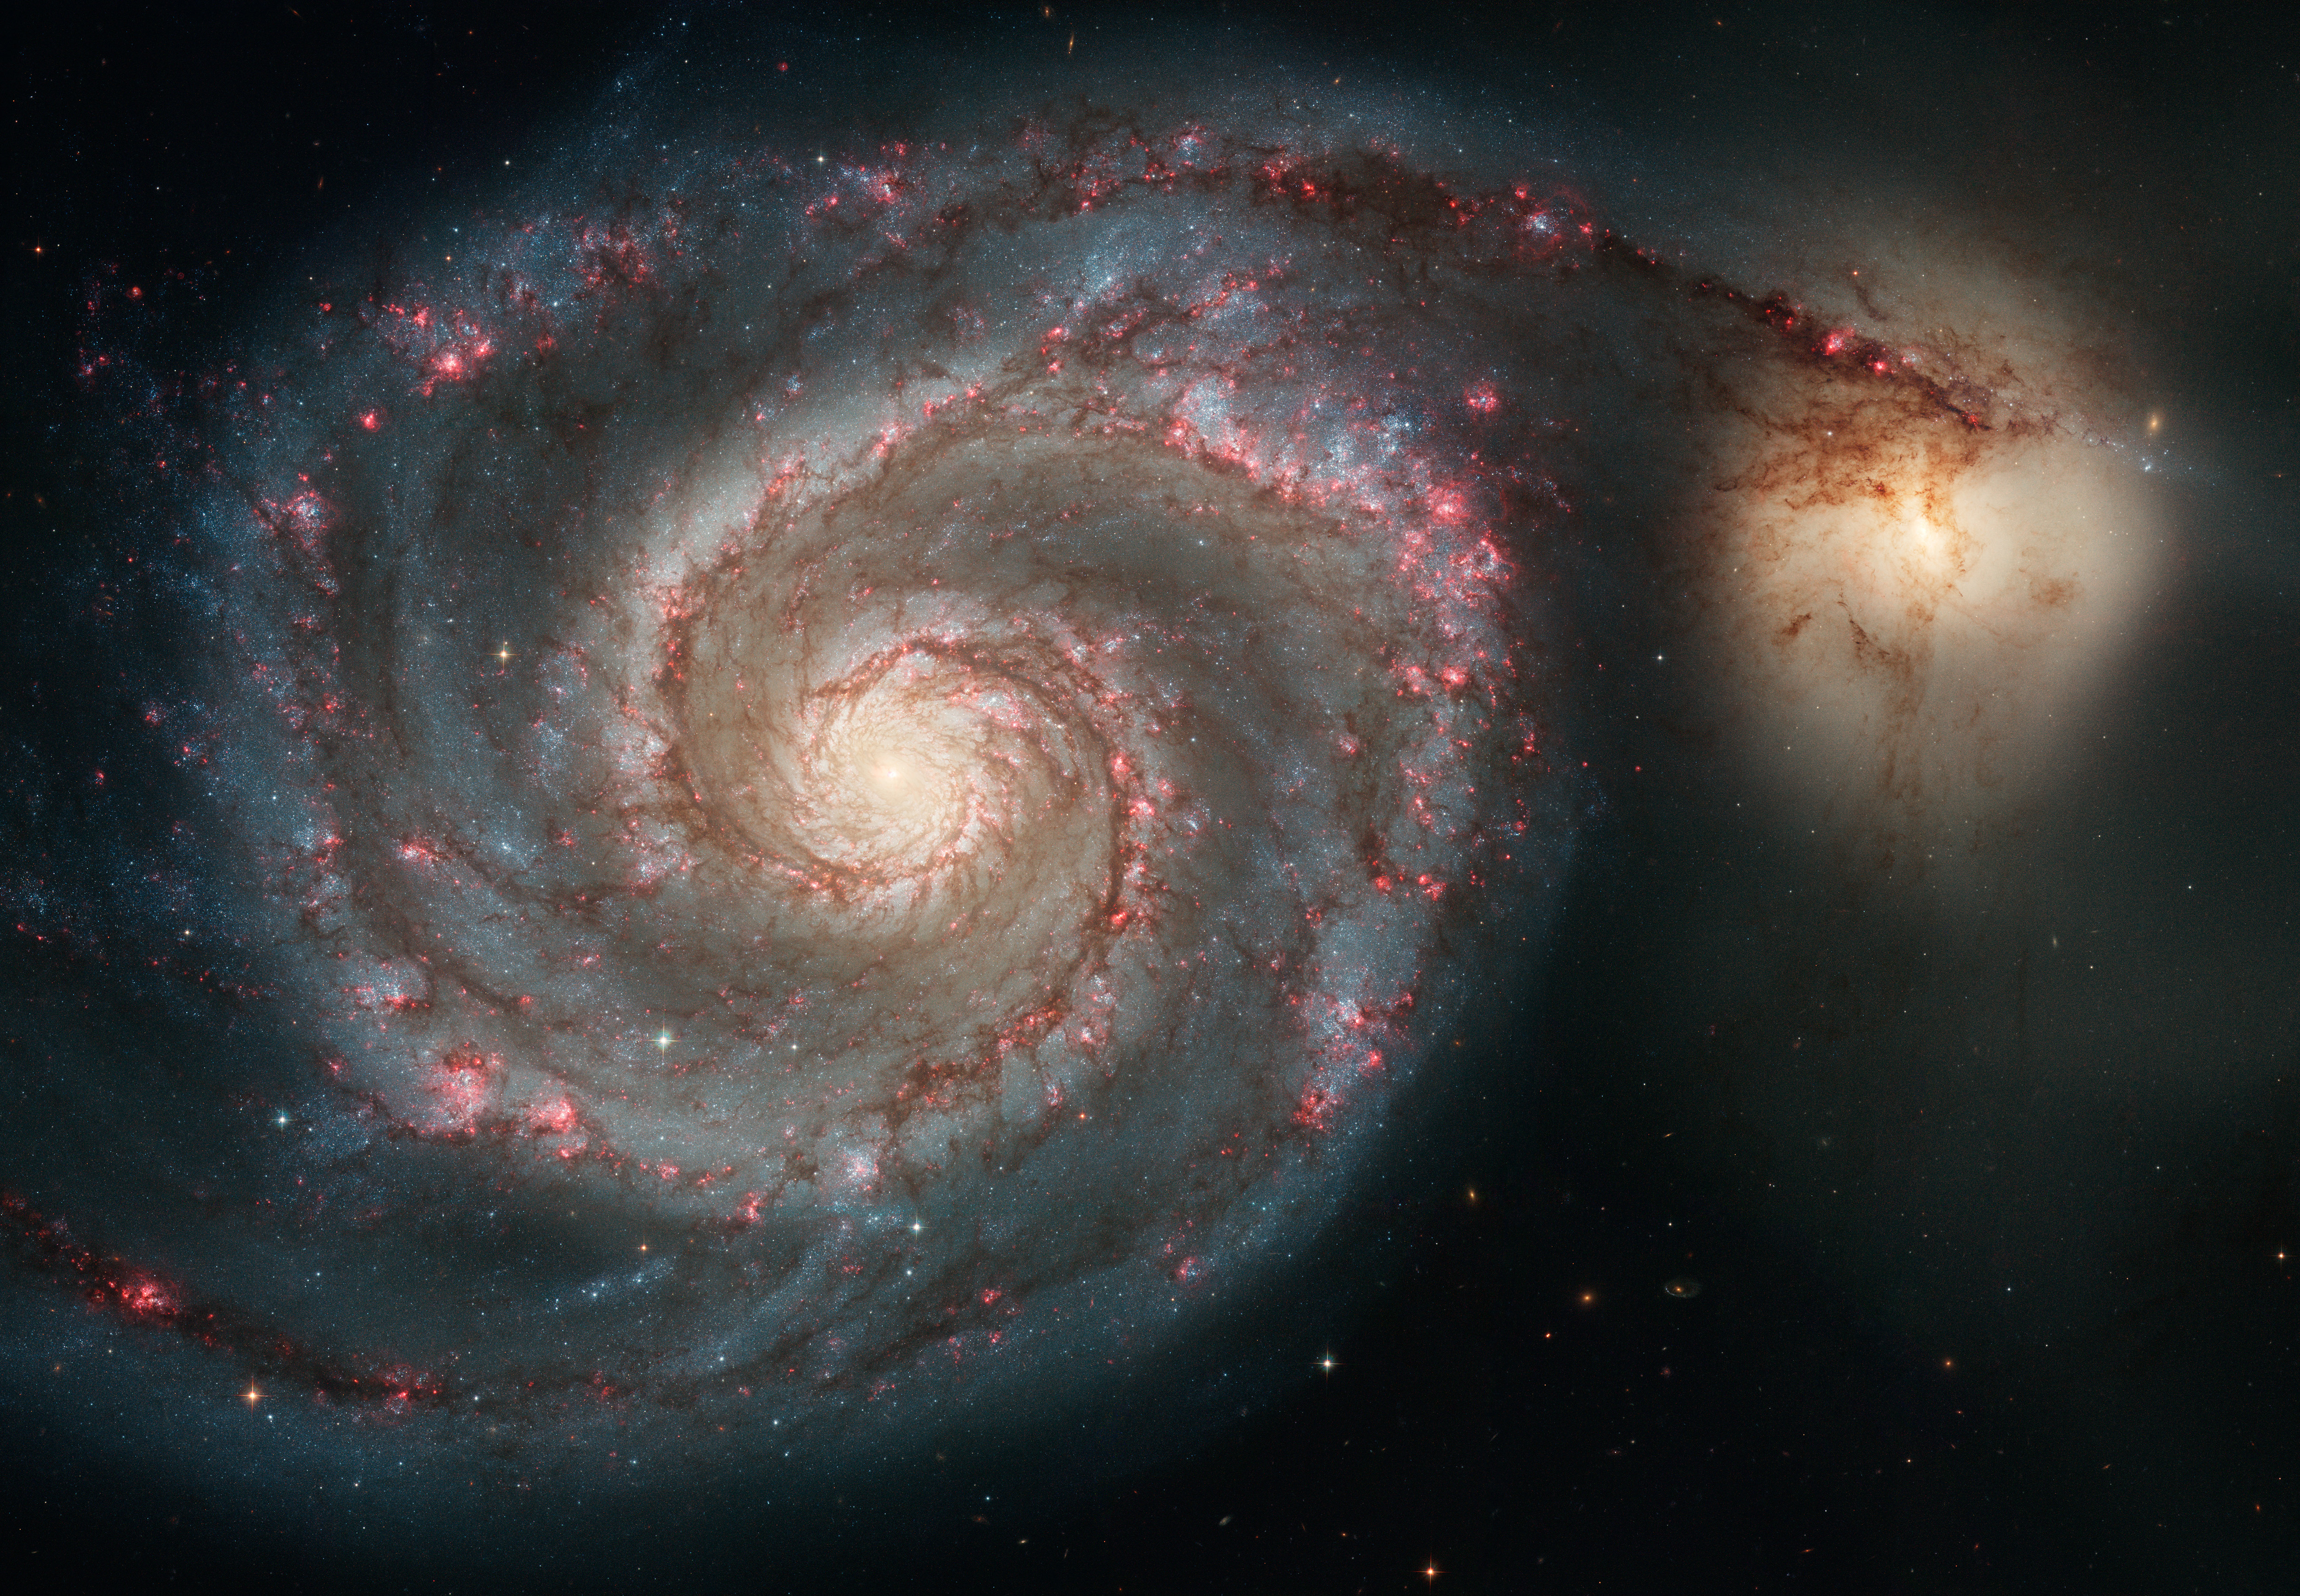 HUBBLE'S TOP 100 • #14 • Credit: NASA, ESA, S. Beckwith (STScI), and The Hubble Heritage Team STScI/AURA)